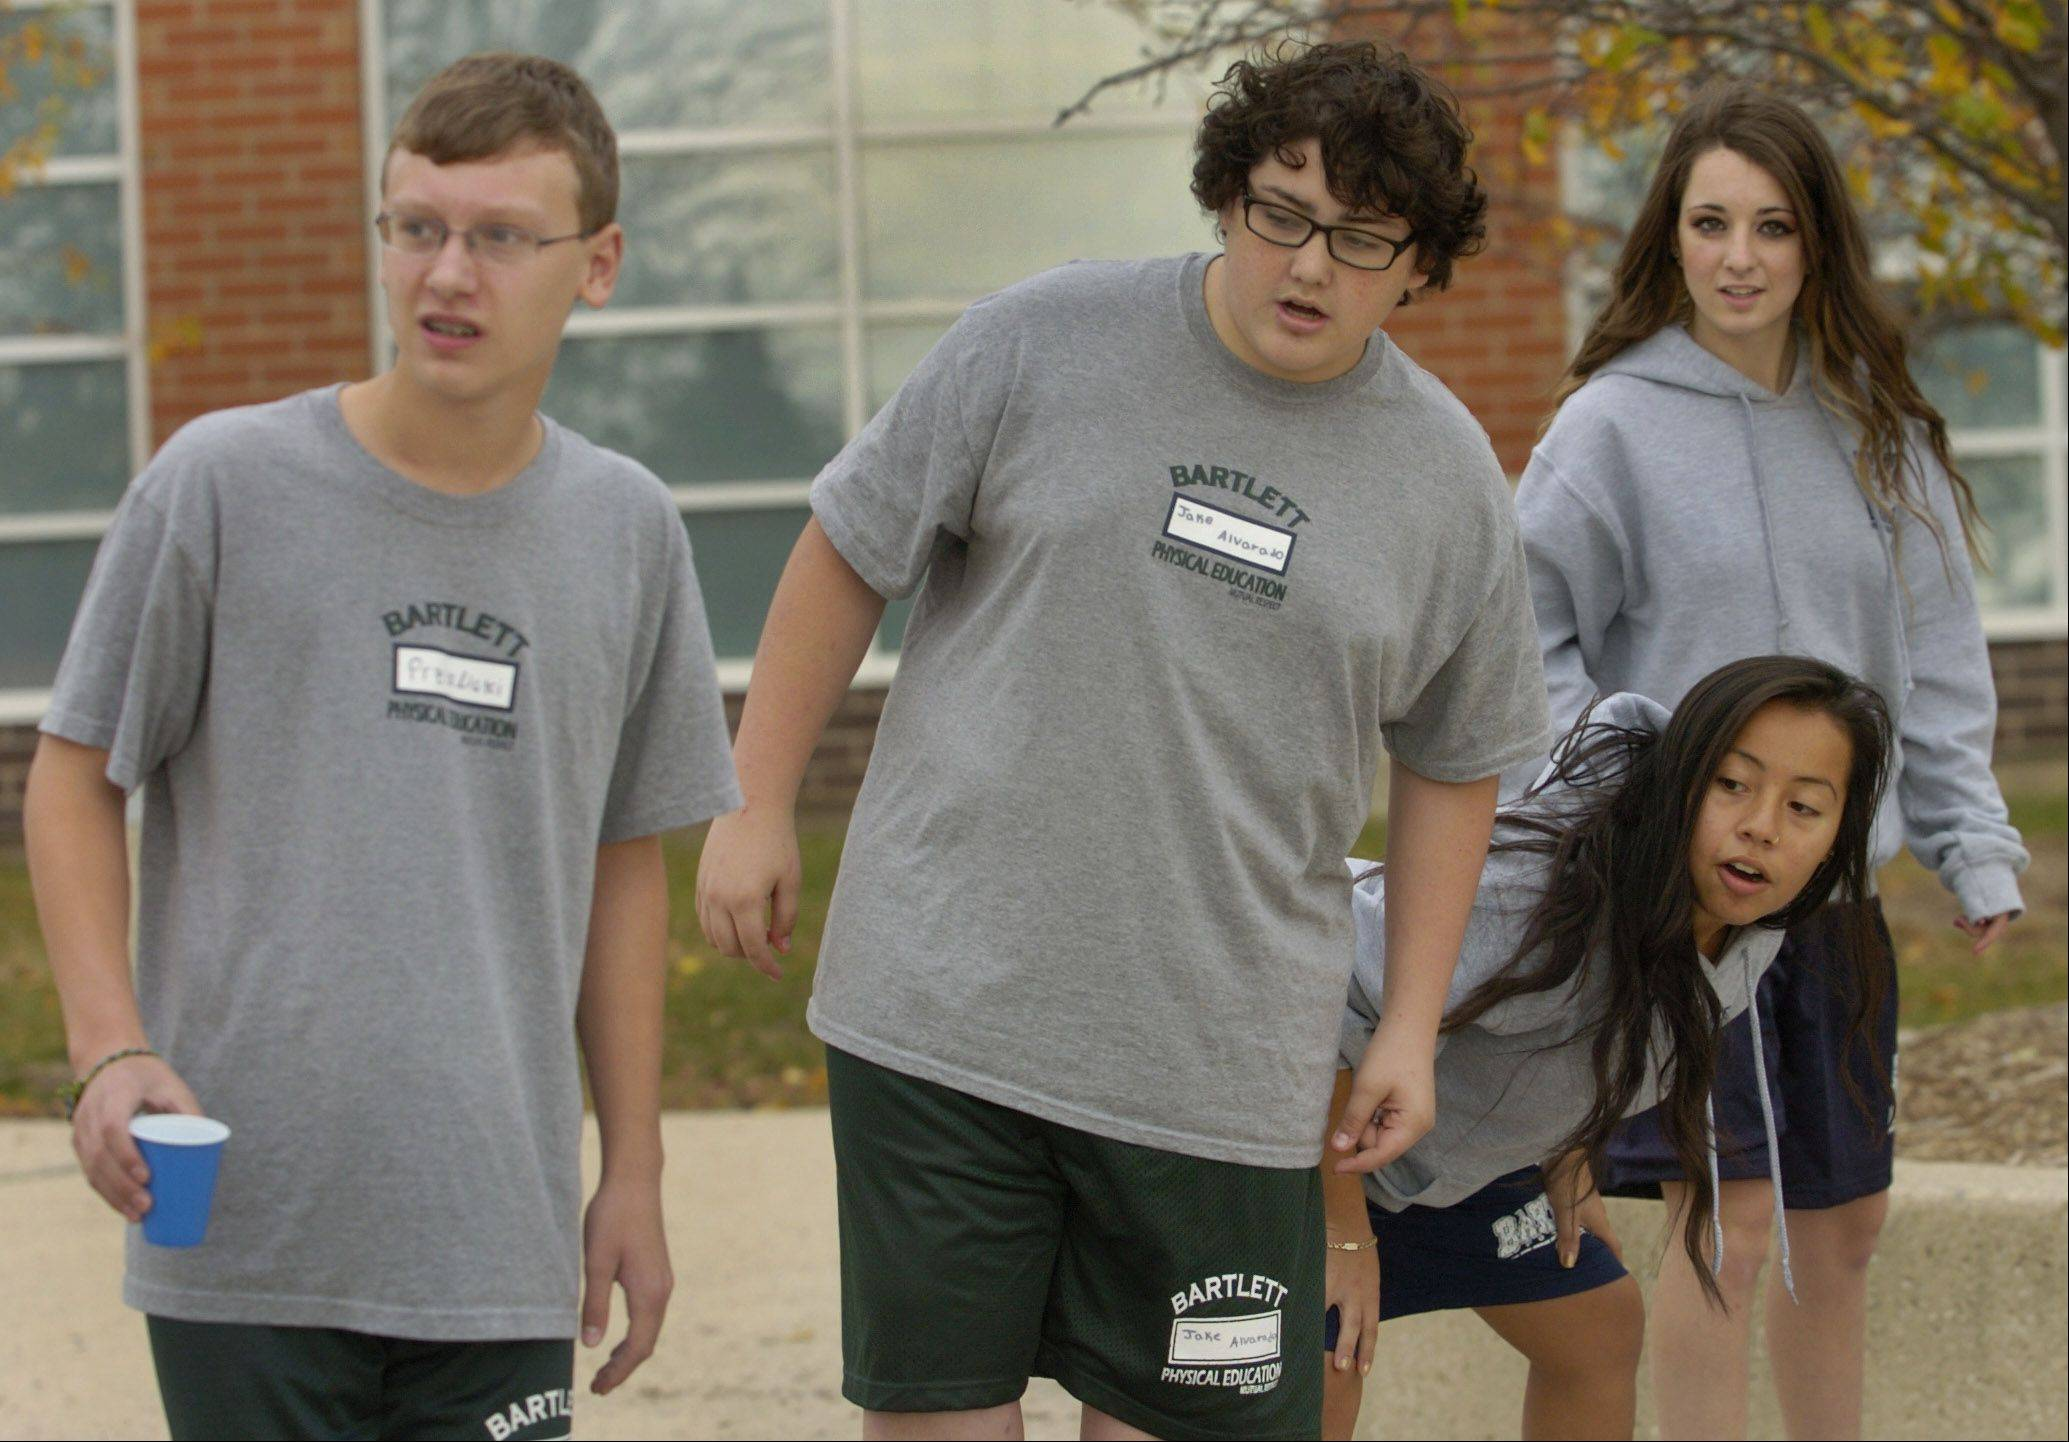 Leaders Selena Cuevas and Cecily Herby, right, guide freshmen Kyle Przislicki, left, and Jake Alvarado through a team-building exercise as part of Bartlett High School's senior leaders program.